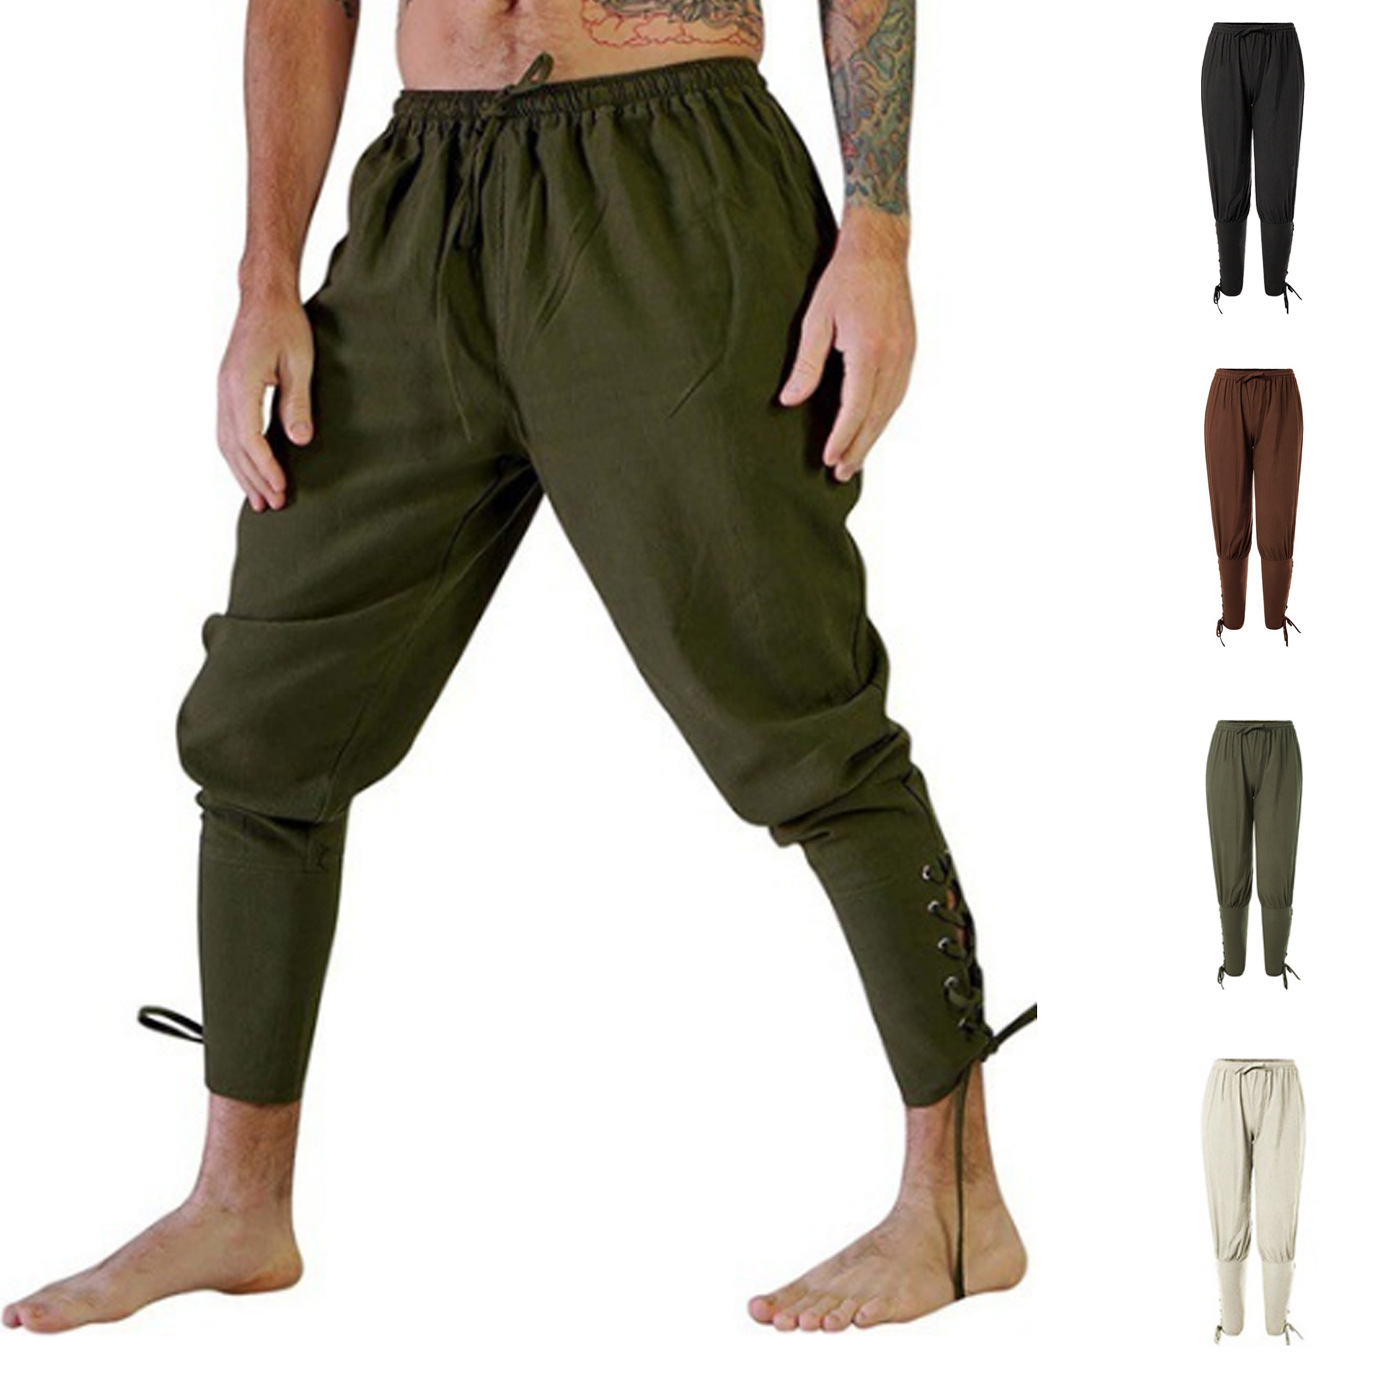 Activity Amount Of Running-2019 Autumn And Winter New Style Casual Trousers Ankle Strap Pants